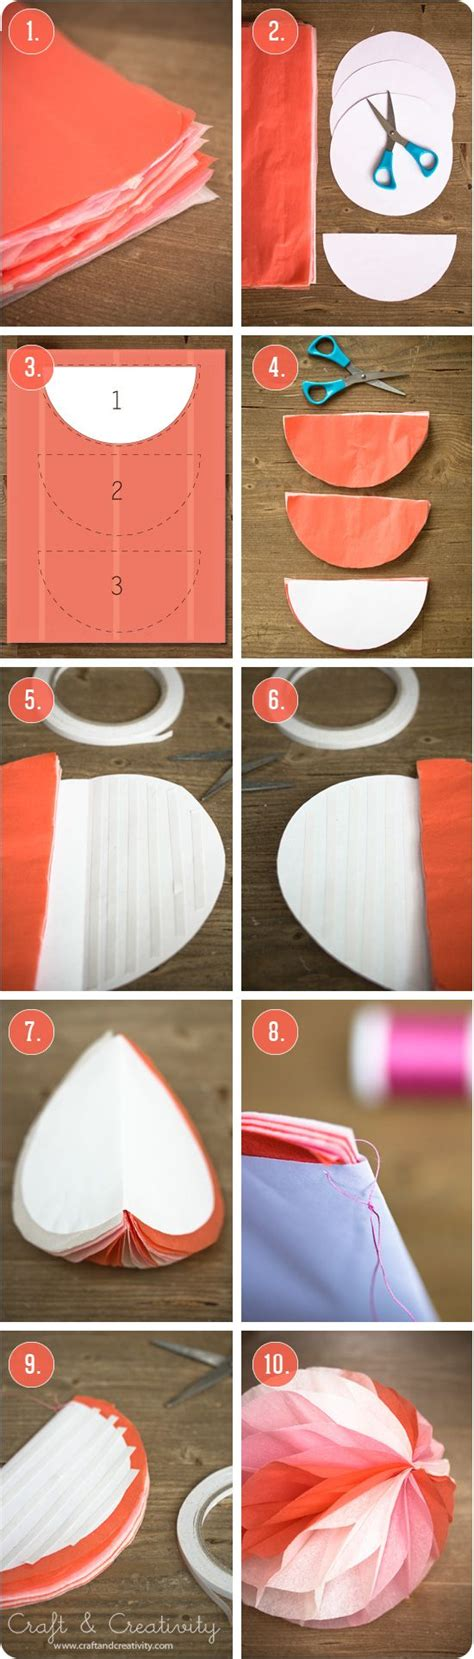 How To Make Paper Balls For Decoration - creativity diy and crafts and honeycomb paper on